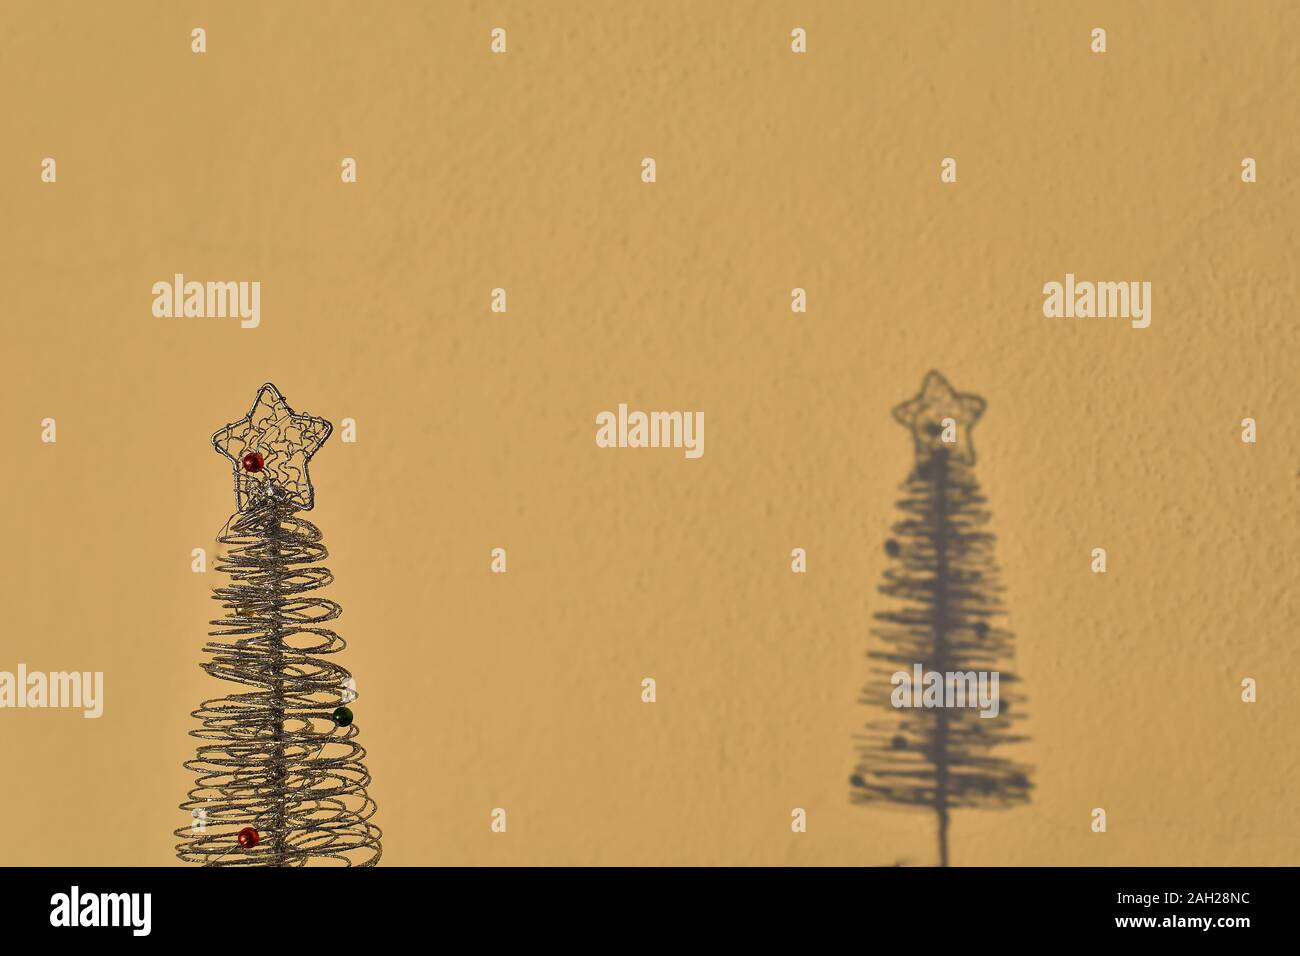 Small Christmas Tree And Its Shadow Cast By The Evening Light On A Yellow Wall Stock Photo Alamy